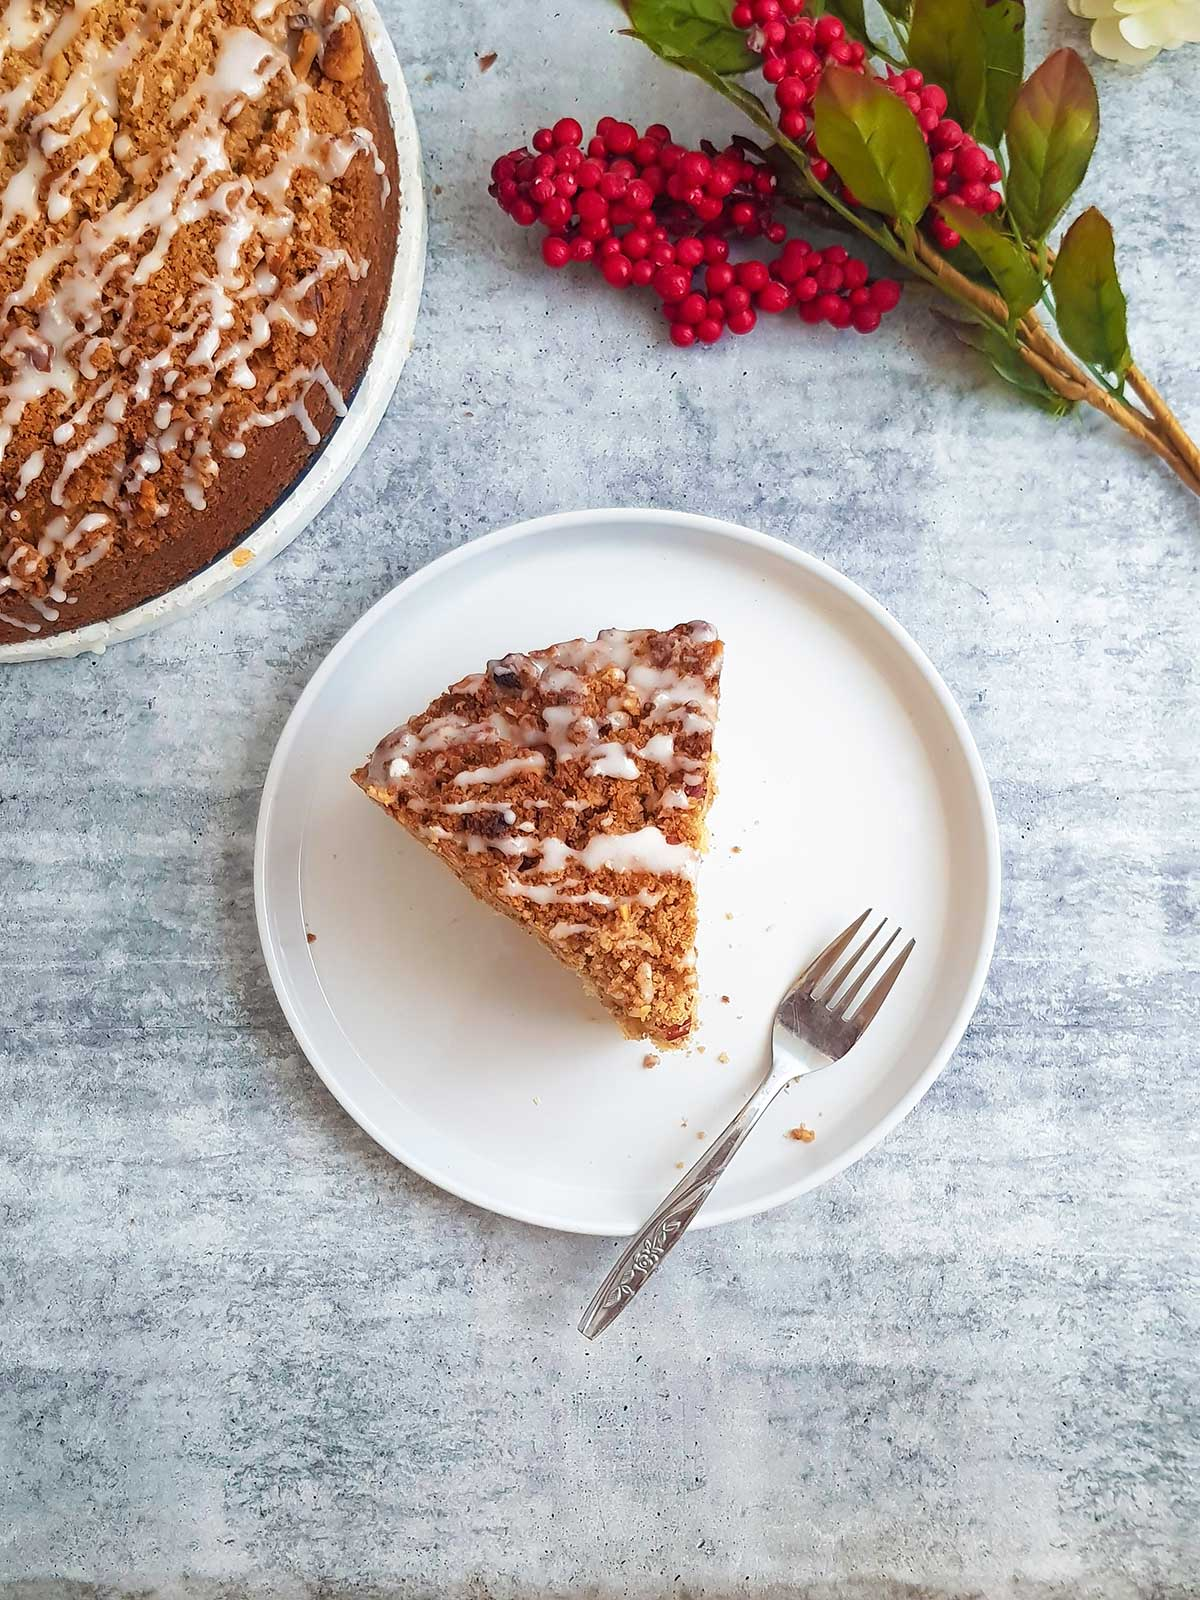 coffee cake slice served in a white plate with fork.